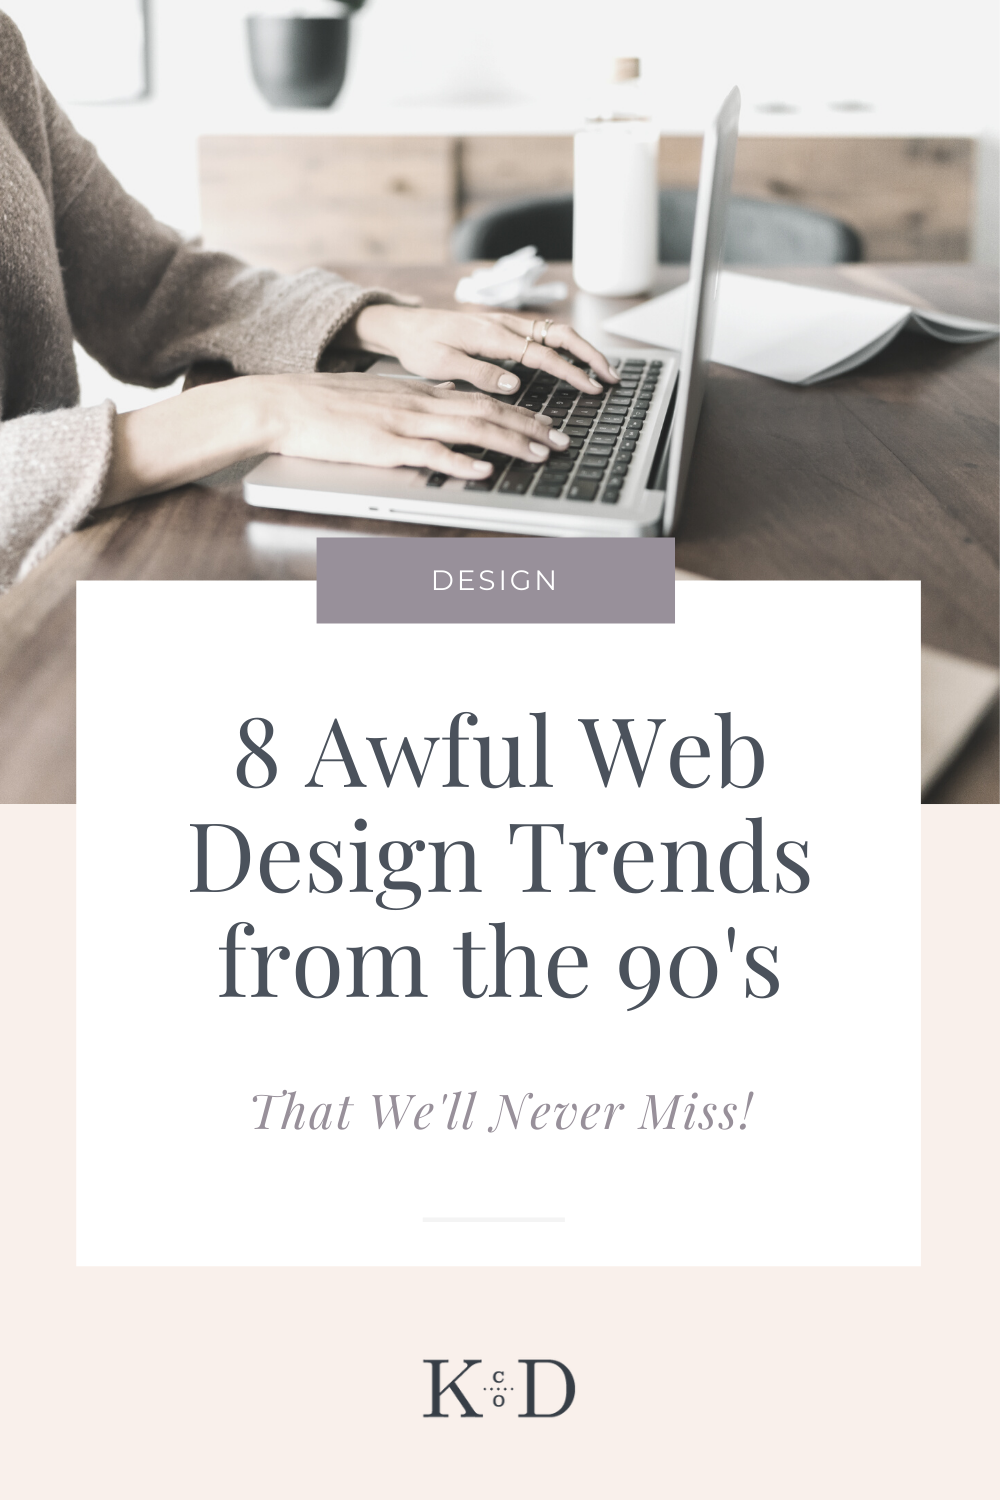 8 Awful Web Design Trends From The 90 S We Don T Miss In 2020 Web Design Trends Web Design Design Trends